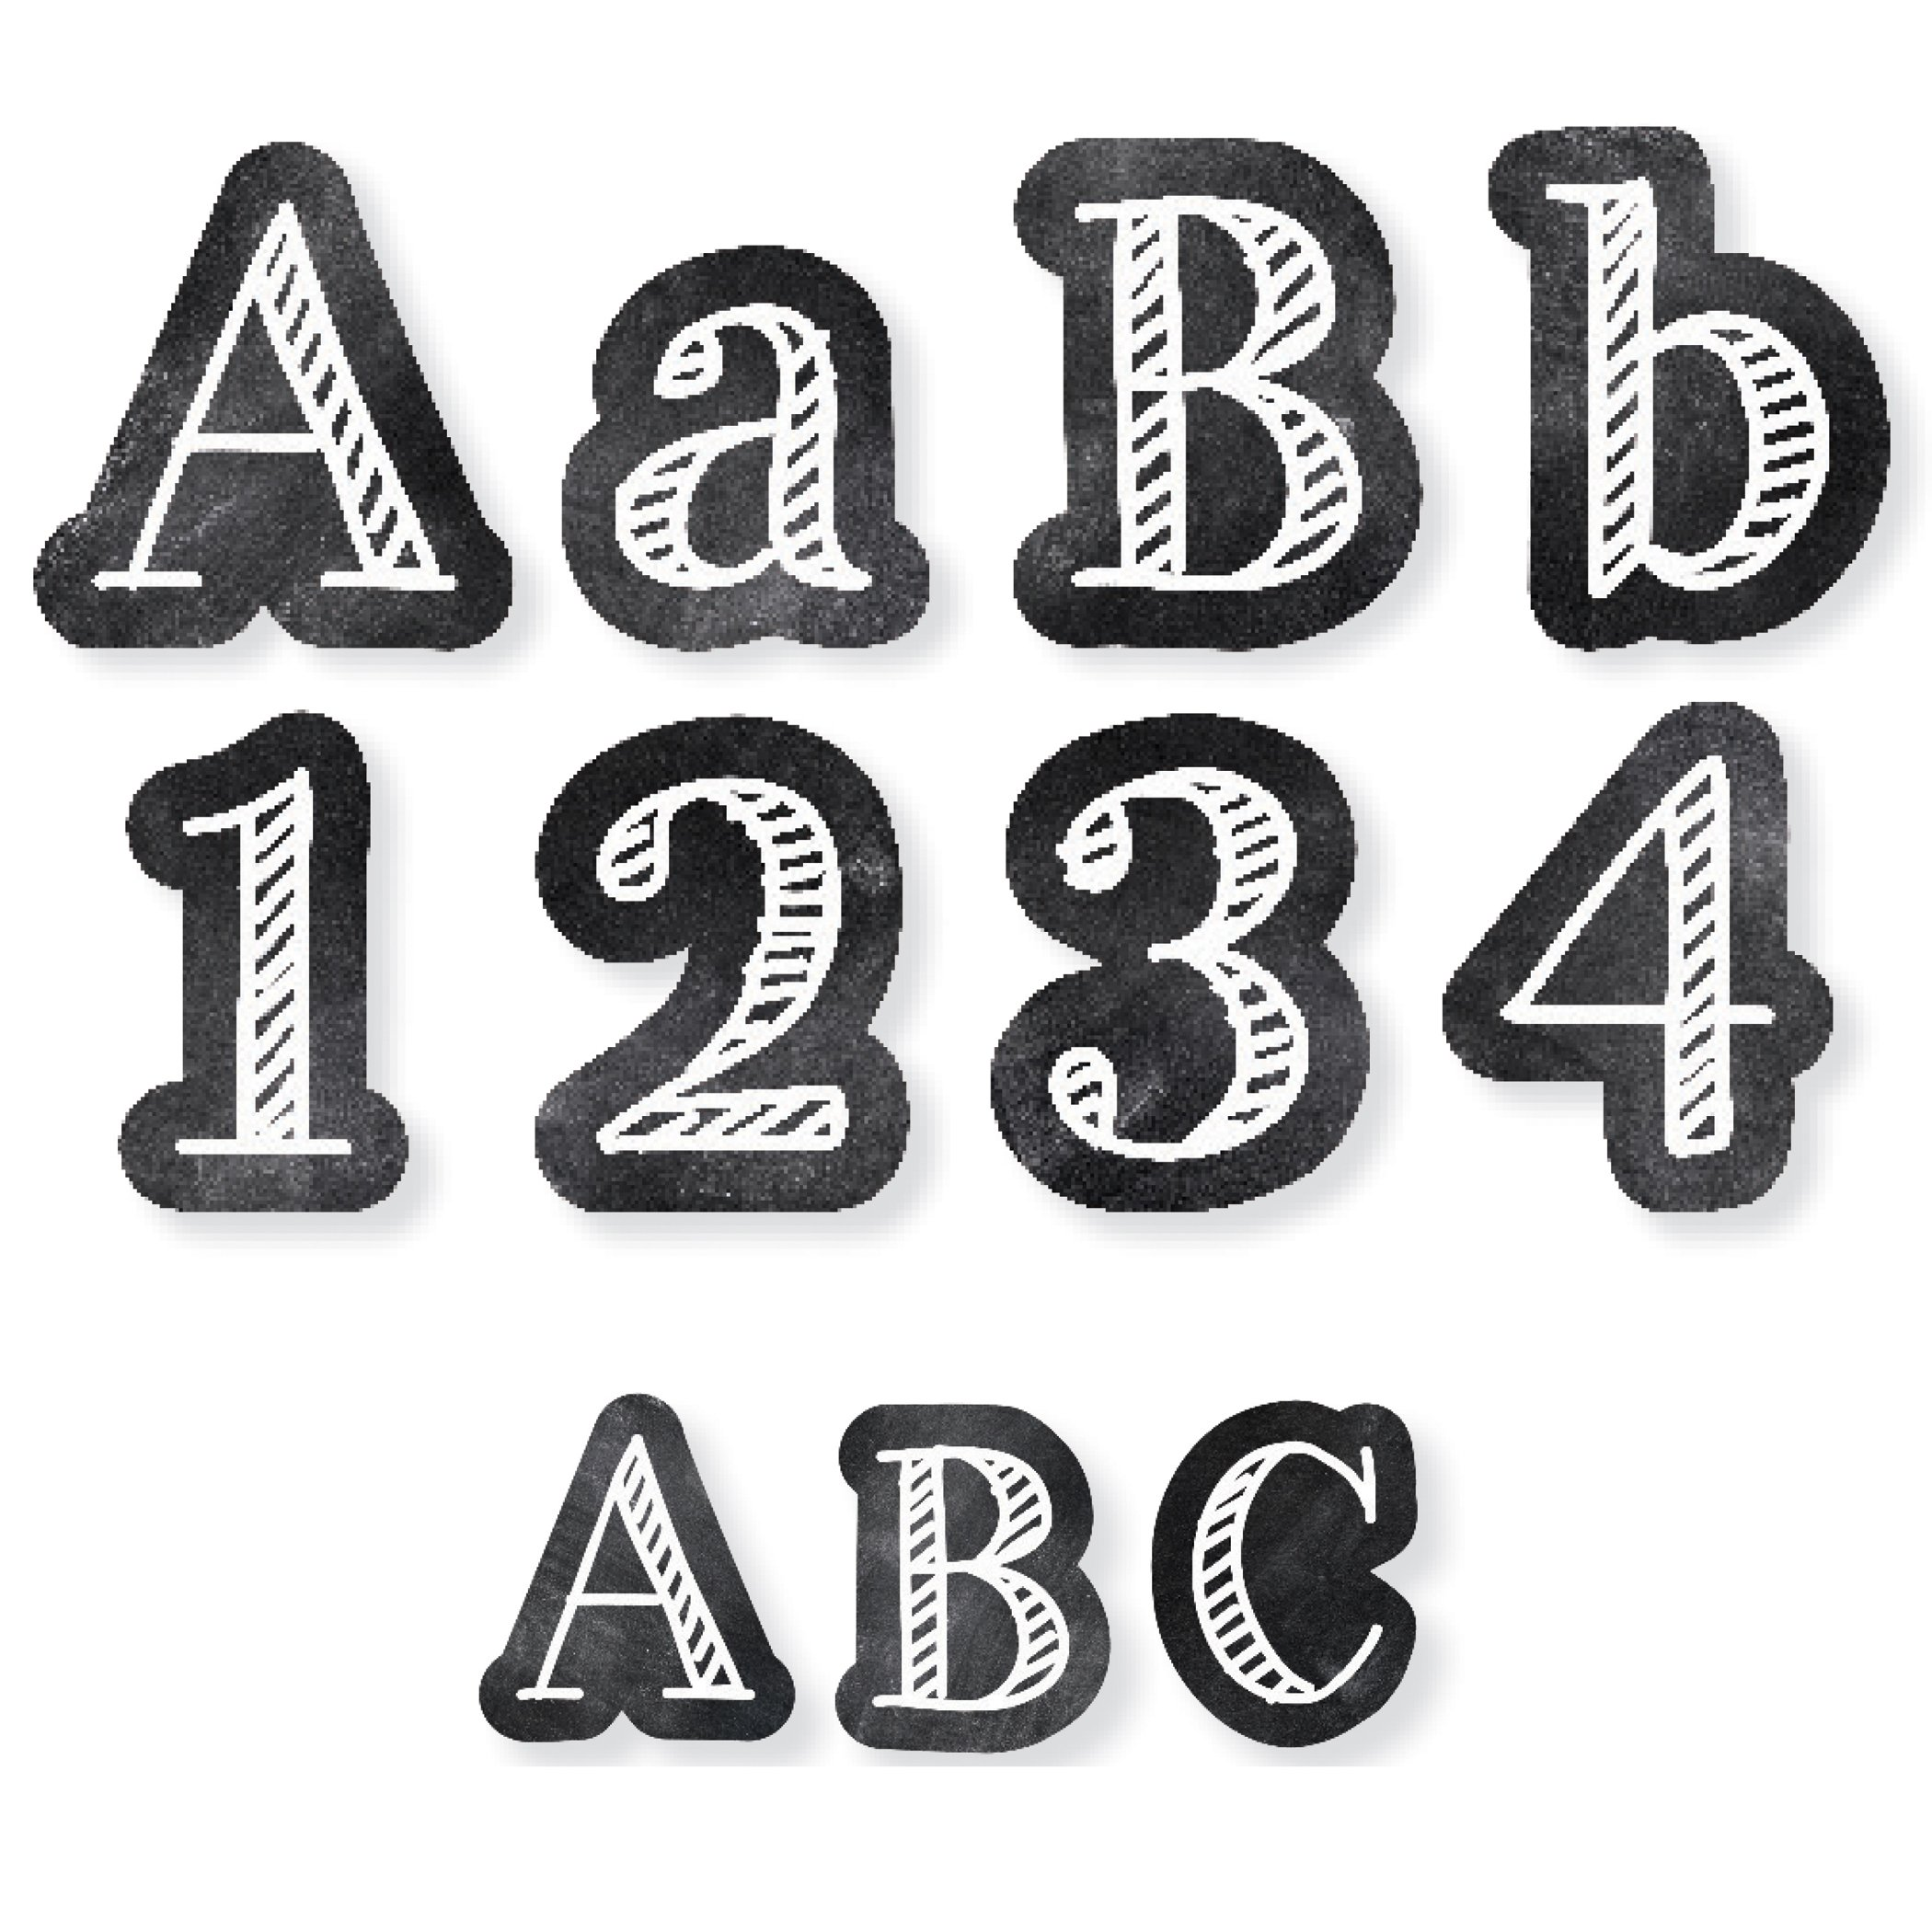 Creative Teaching Press CTP8913 Chalk It Up! Letters Pack: 4'' Punch Out Letters & 2'' Letter Sticker (Pack of 276) by Creative Teaching Press